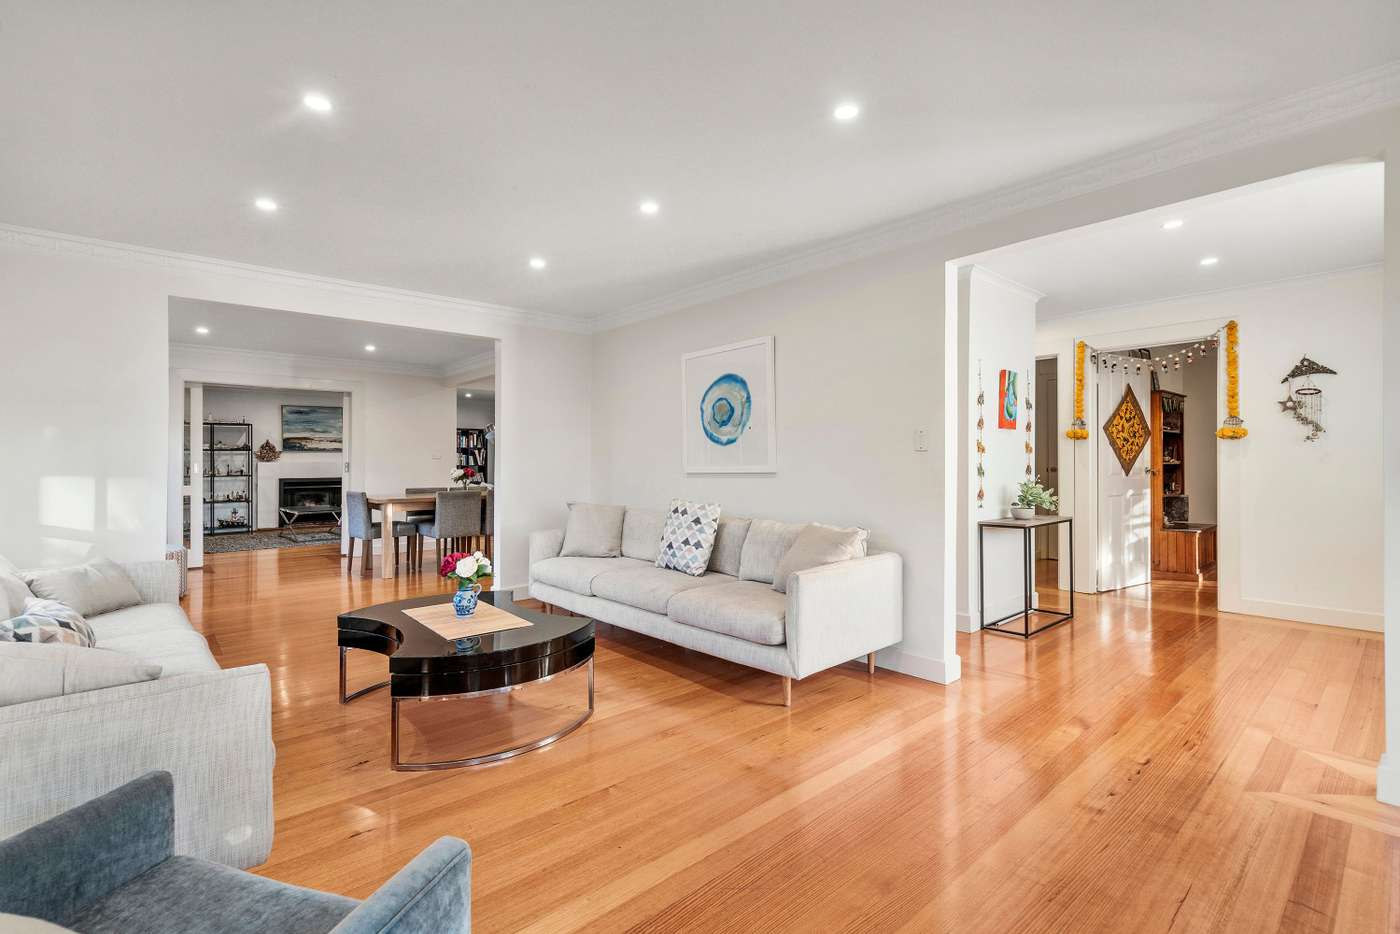 Sixth view of Homely house listing, 96 Jacksons Road, Mulgrave VIC 3170